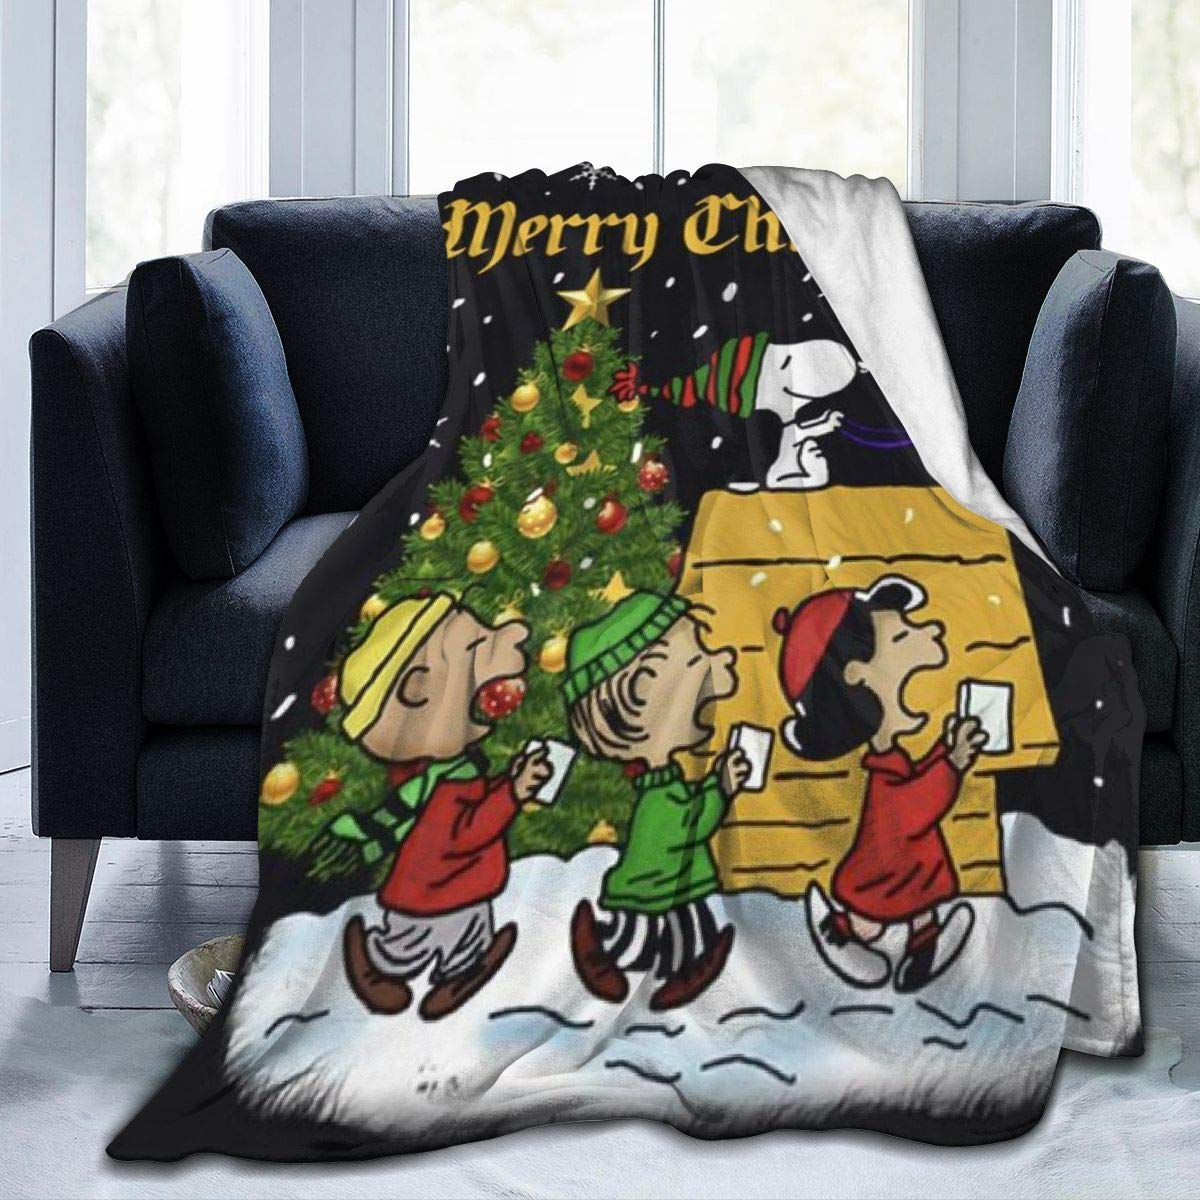 Criss Snoopy Merry Christmas Throw Blanket Ultra Soft Thick Microplush Bed Blanket-All Season Premium Fluffy Microfiber Fleece Throw for Sofa Couch Throw80 x60 by Criss